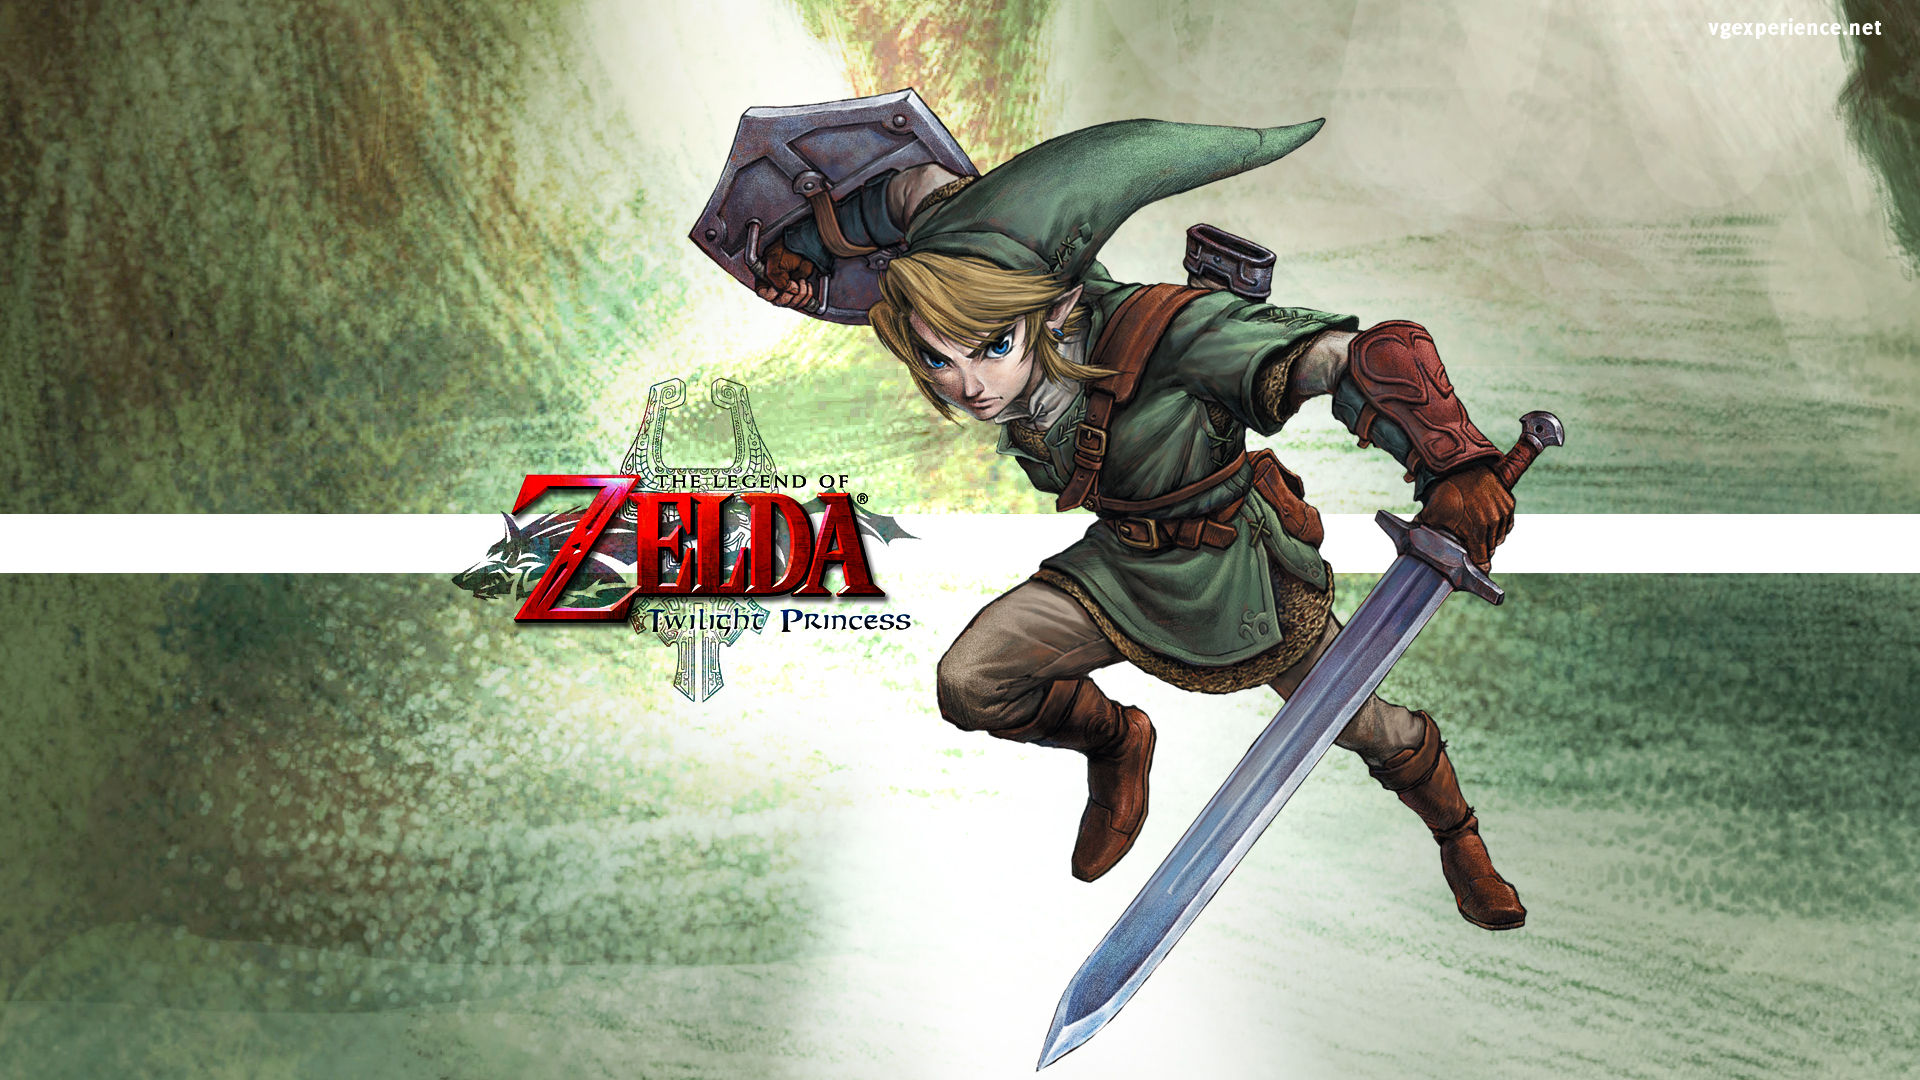 Zelda Twilight Princess Wallpaper 1080p The legend of zelda twilight 1920x1080